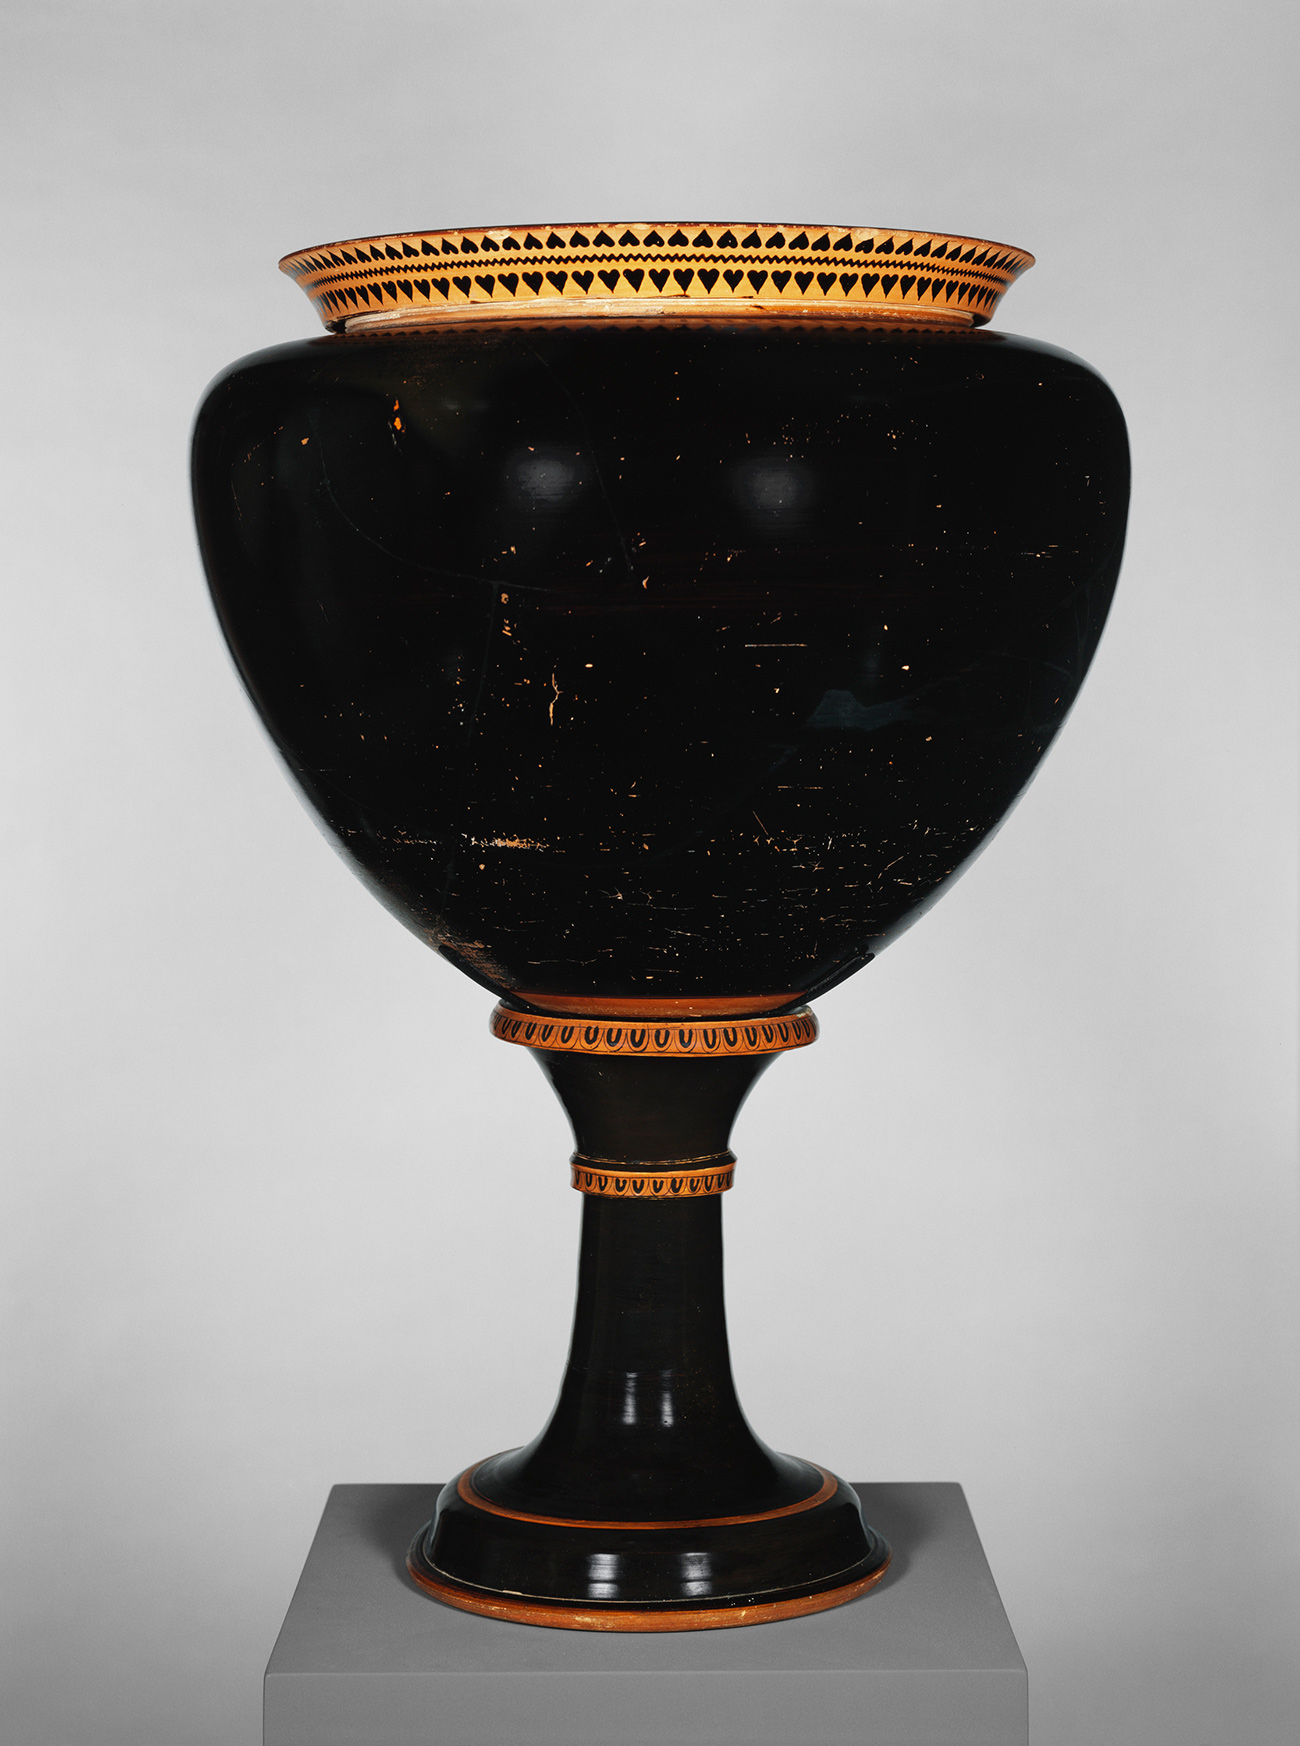 A glossy black, bulbous vase with a terracotta lip atop a tall stand